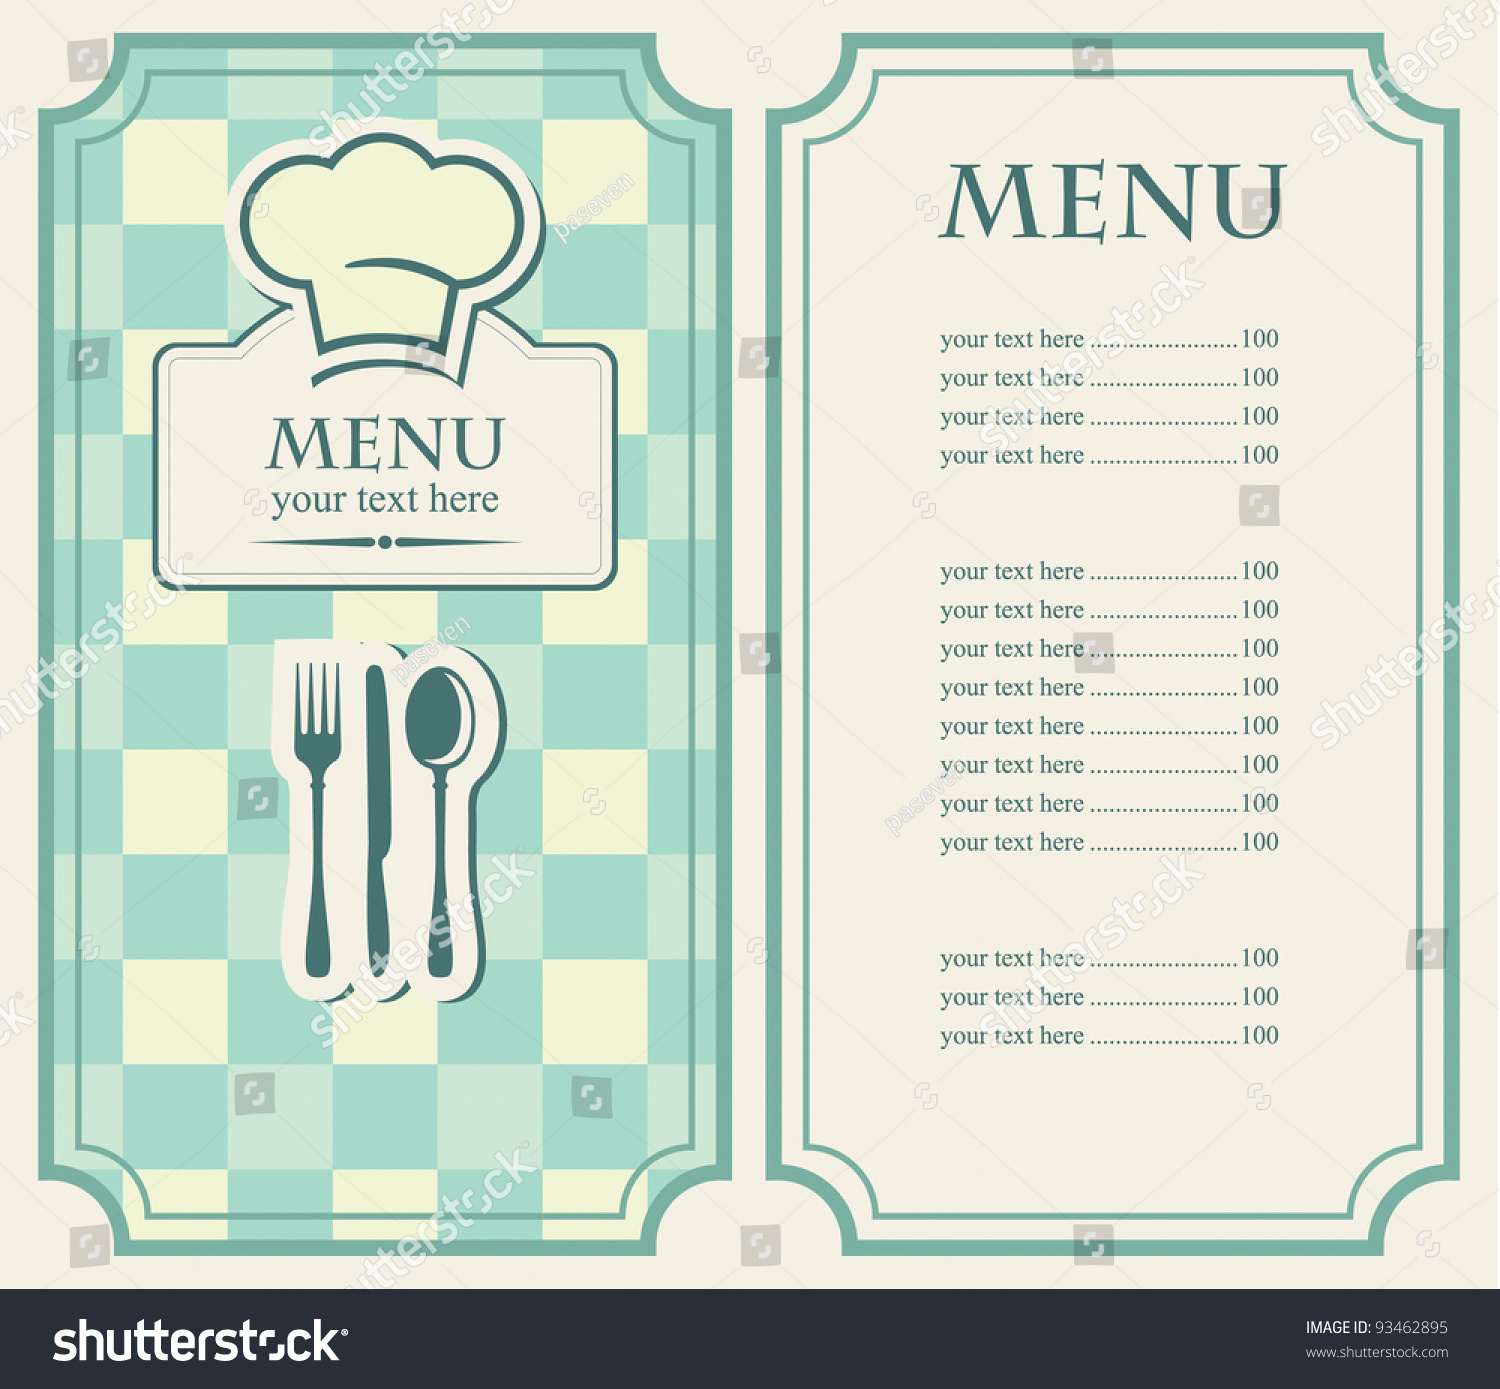 easy menu templates free - green menu for a cafe or restaurant stock vector